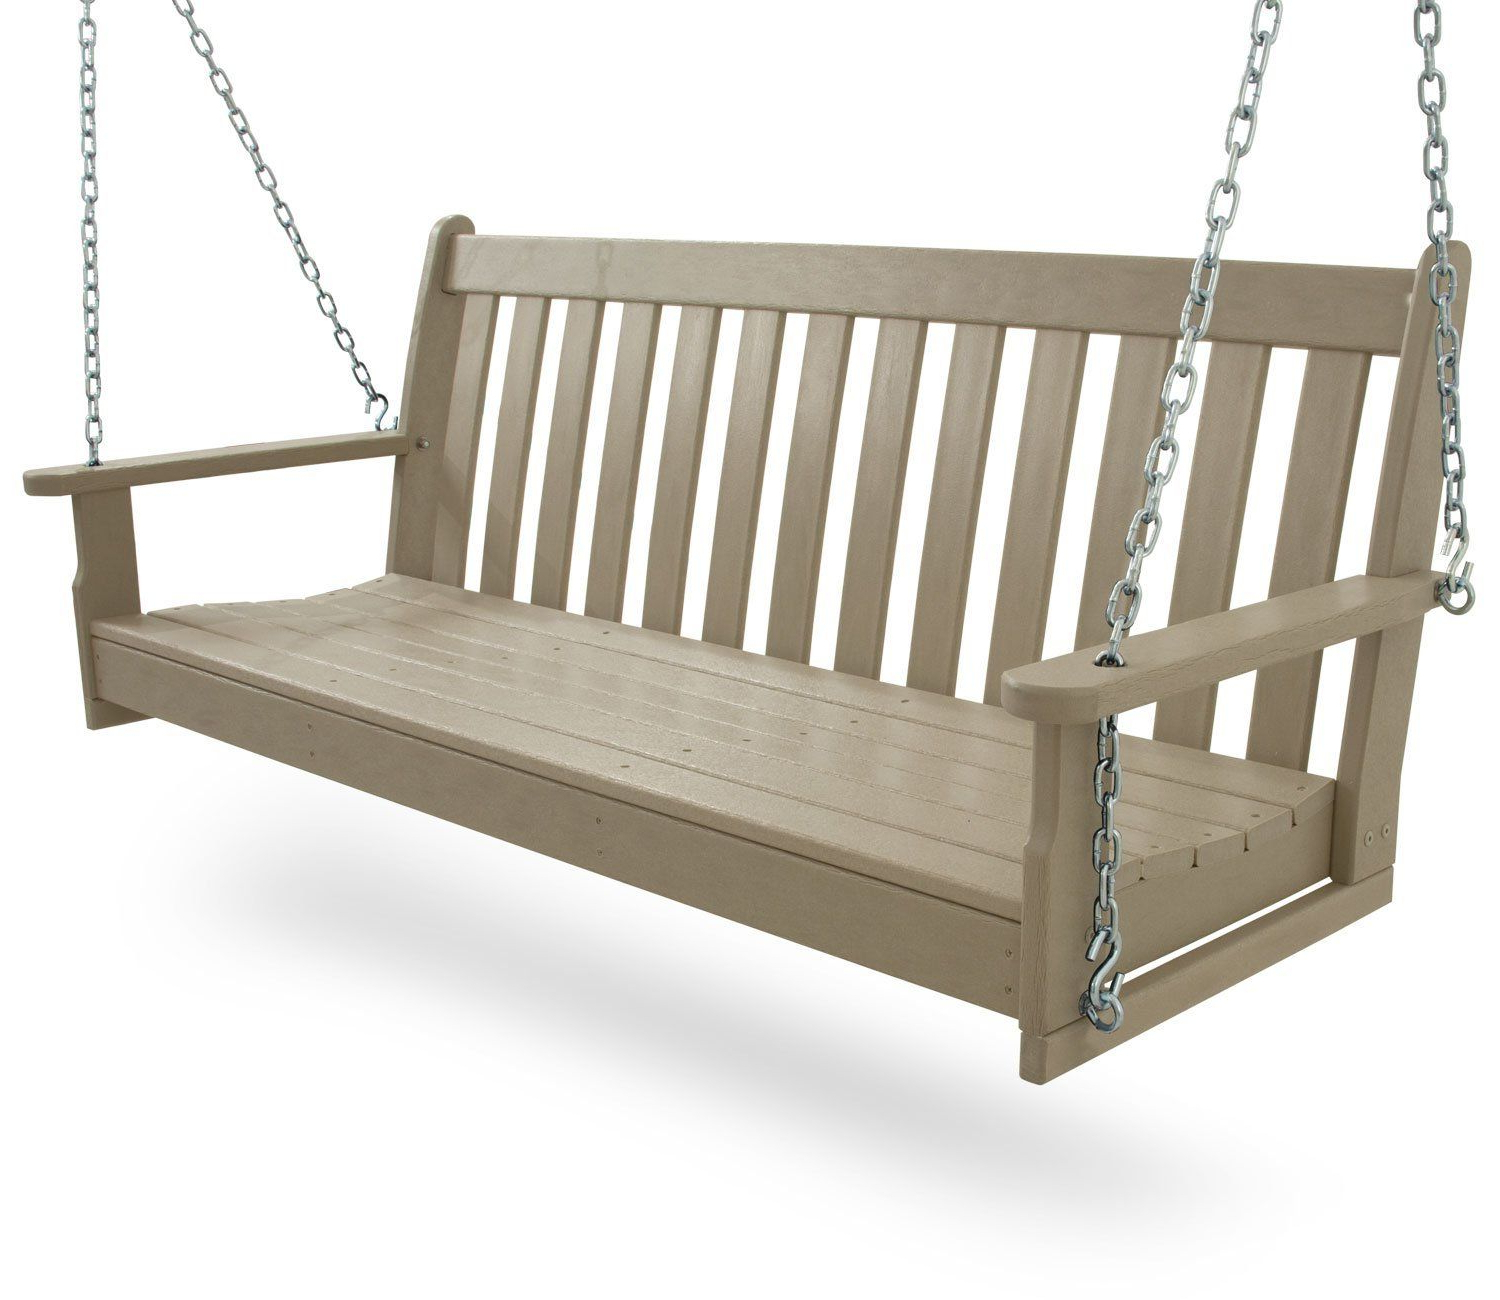 "Favorite Vineyard Porch Swings Within Amazon : Polywood Gns60wh Vineyard 60"" Swing, White (View 6 of 30)"